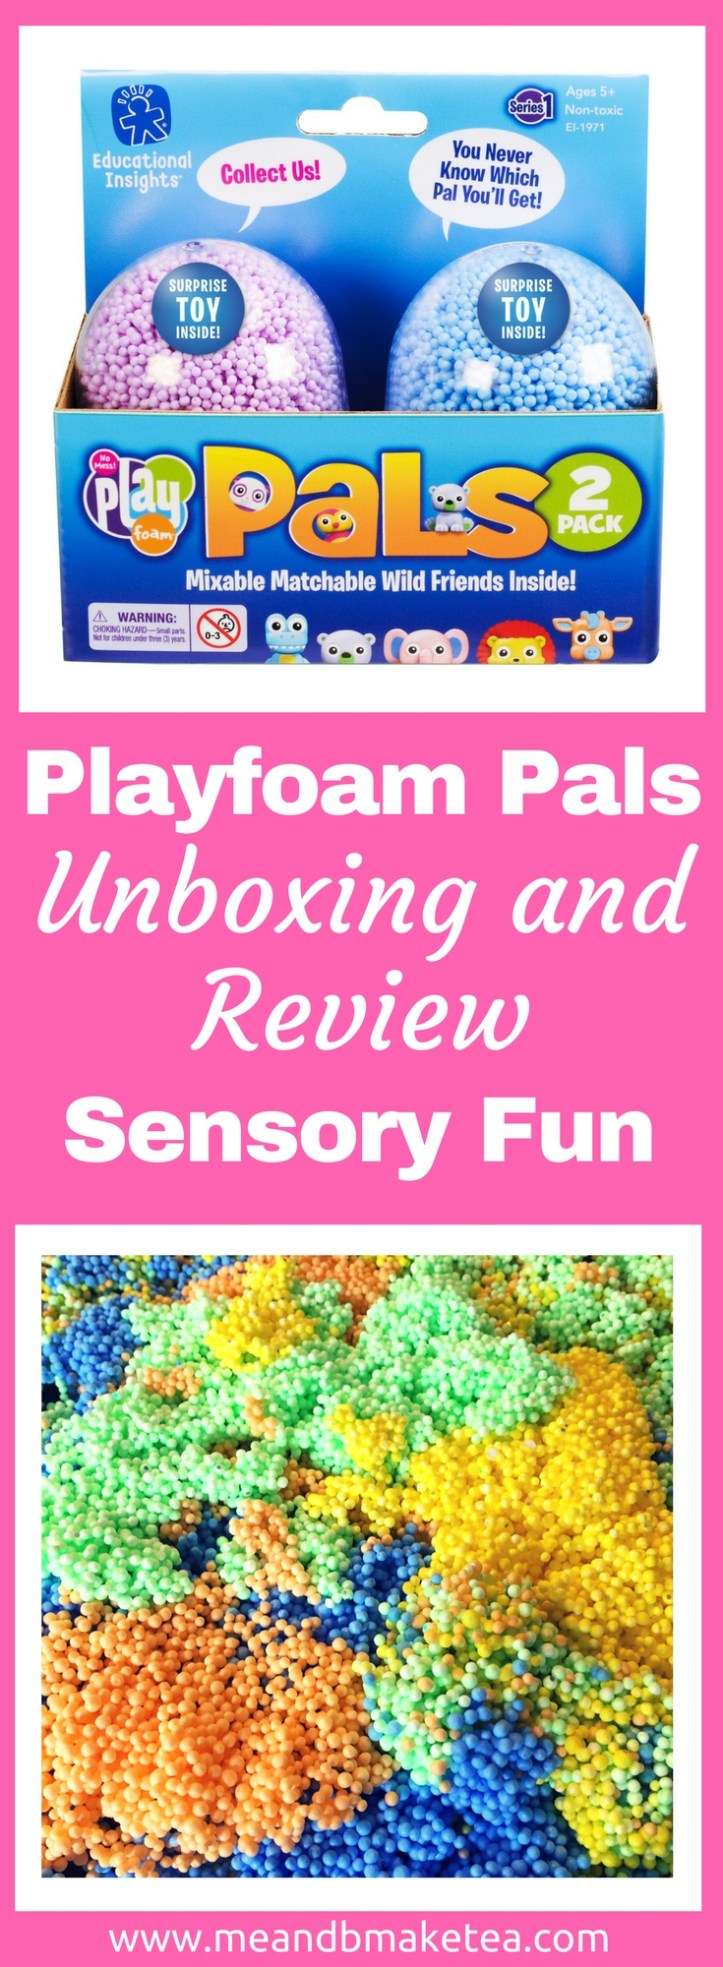 Collectible Sensory Fun With Playfoam Pals!